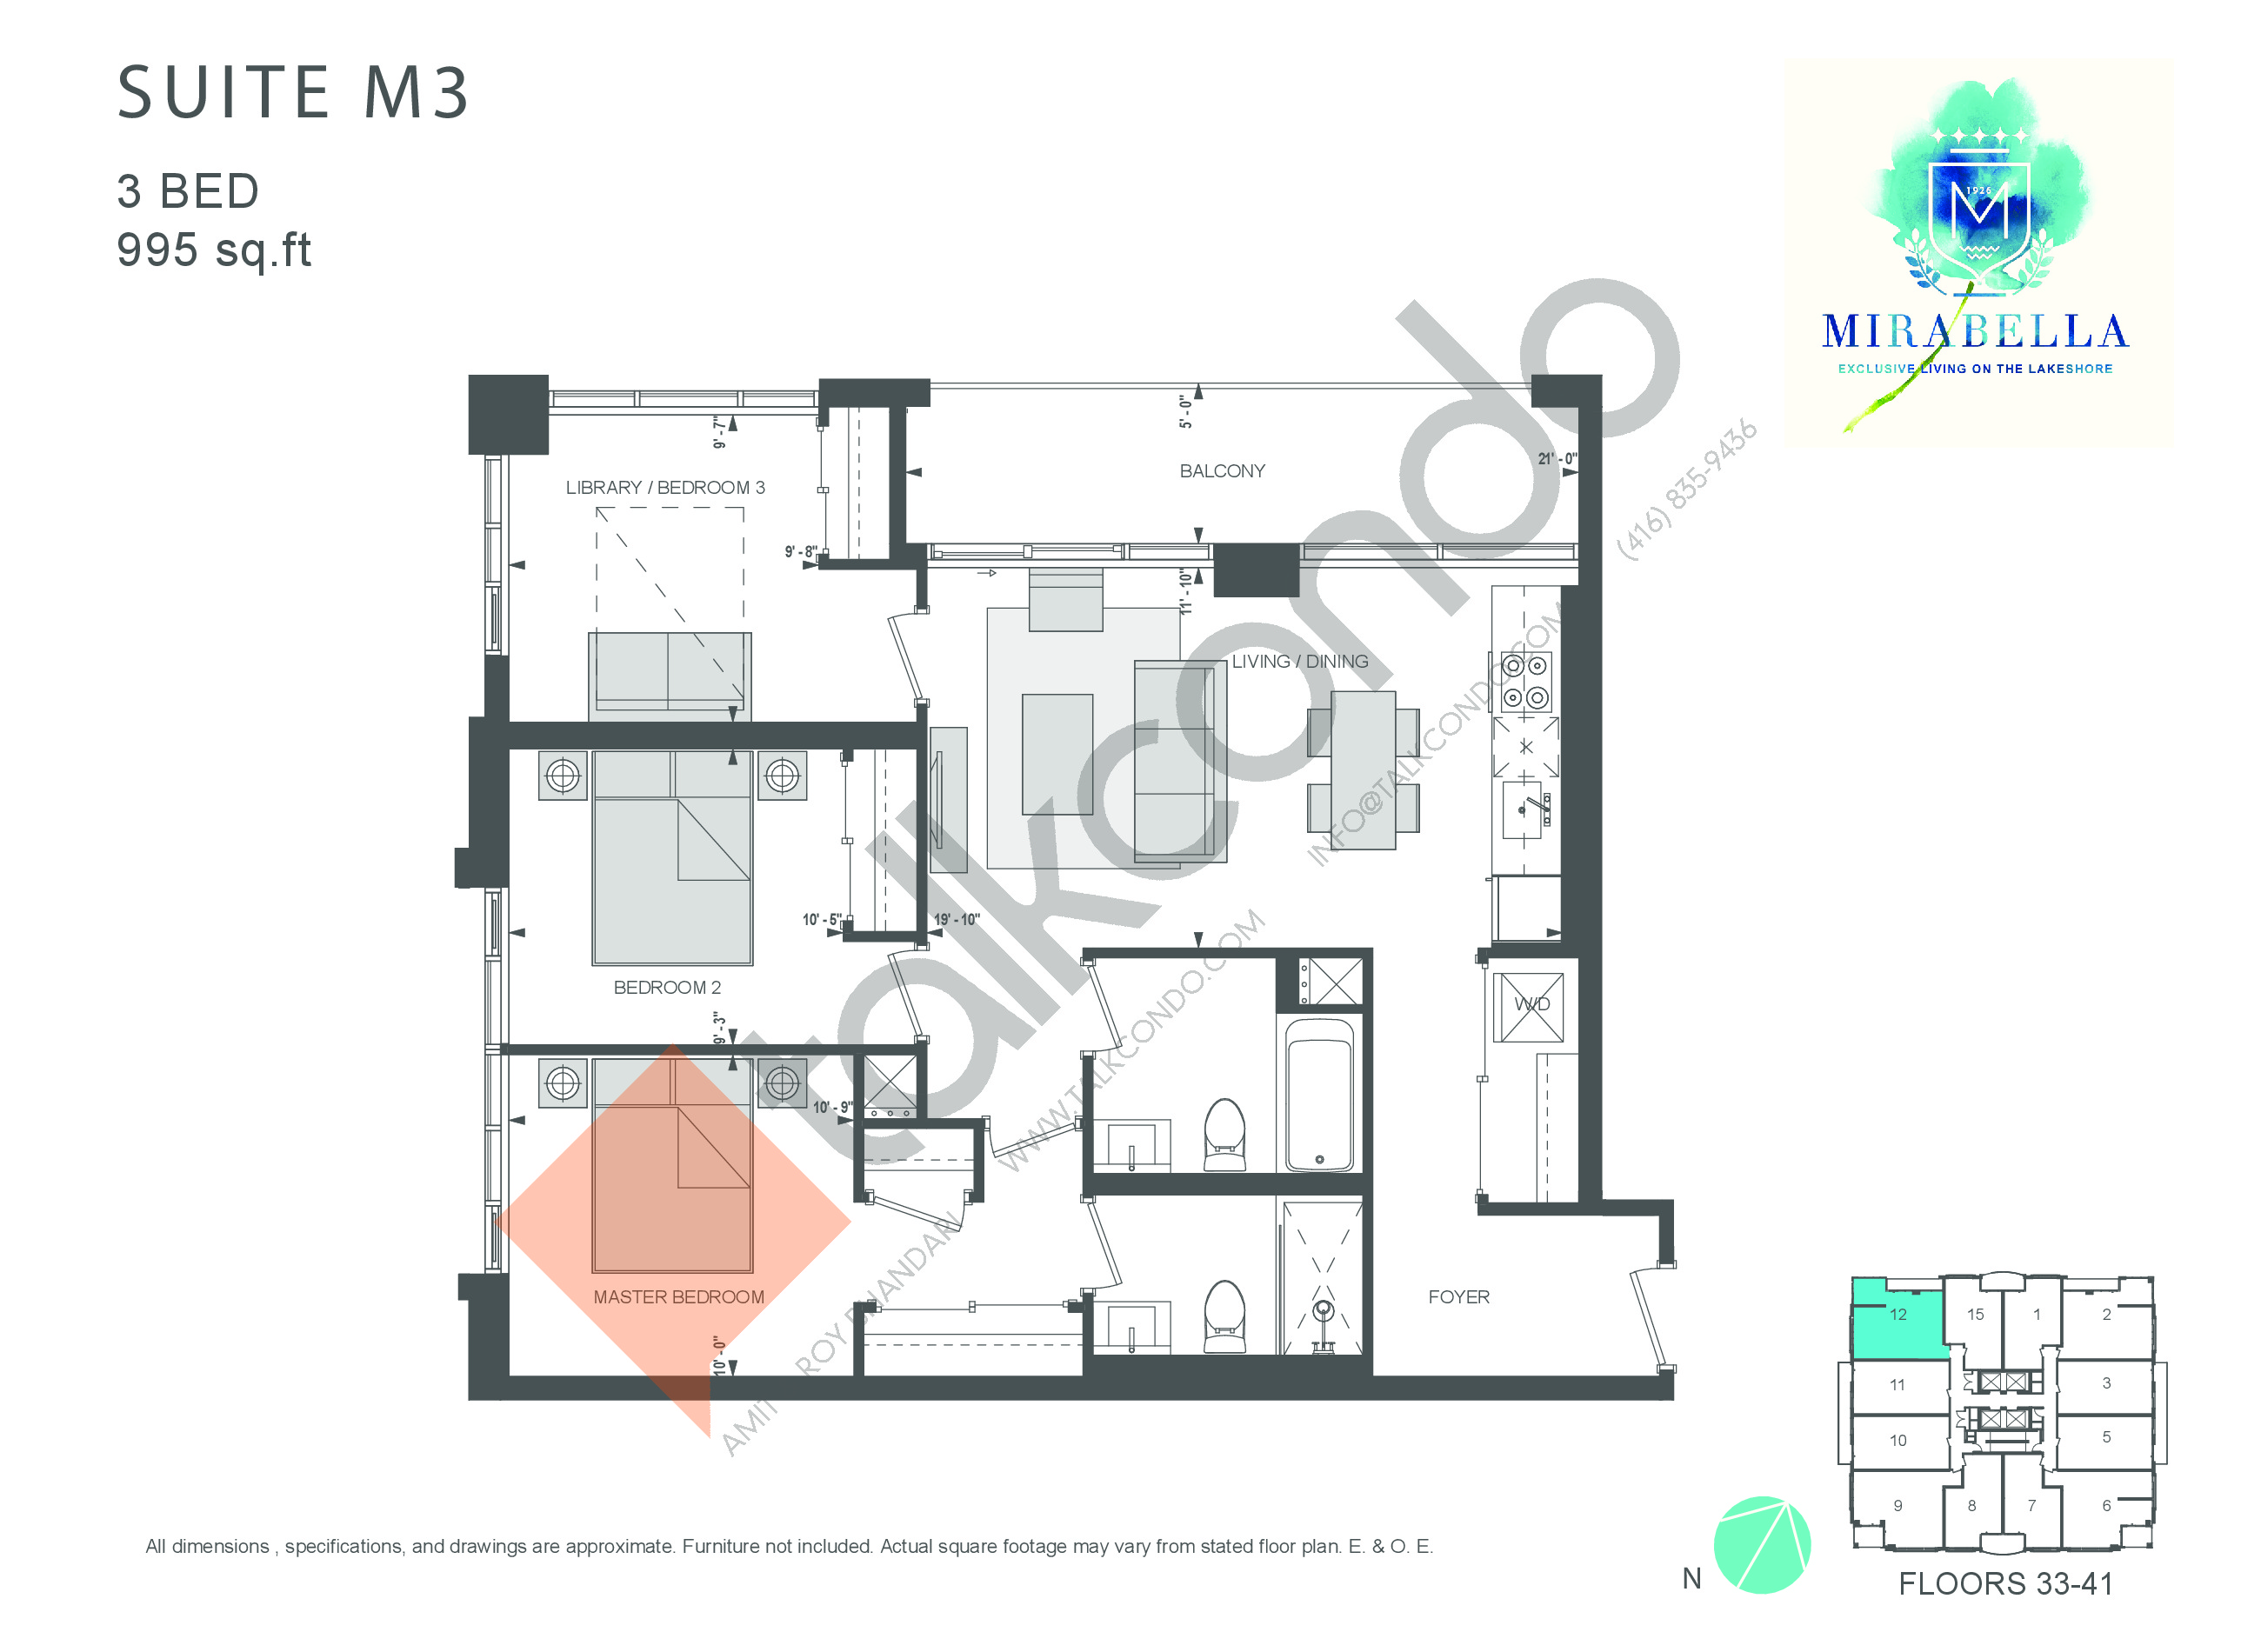 Suite M3 Floor Plan at Mirabella Luxury Condos East Tower - 995 sq.ft